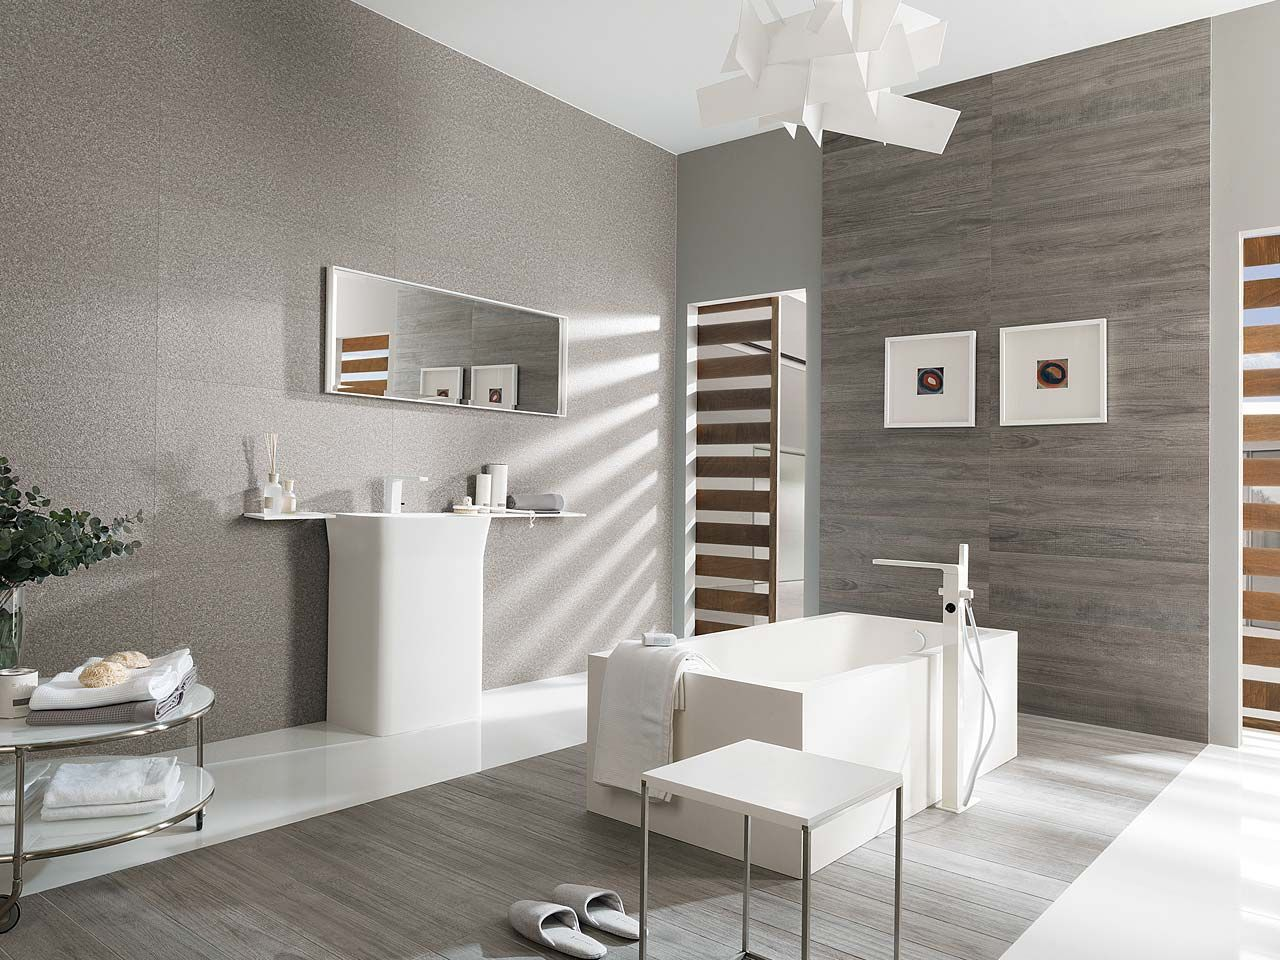 This hampton grey creates a modern fresh feel in this bathroom modern bathroom with porcelanosas elegant ceramic tiles floor tiles par ker hampton grey crystal floor white wall tiles par ker hampton grey dailygadgetfo Image collections